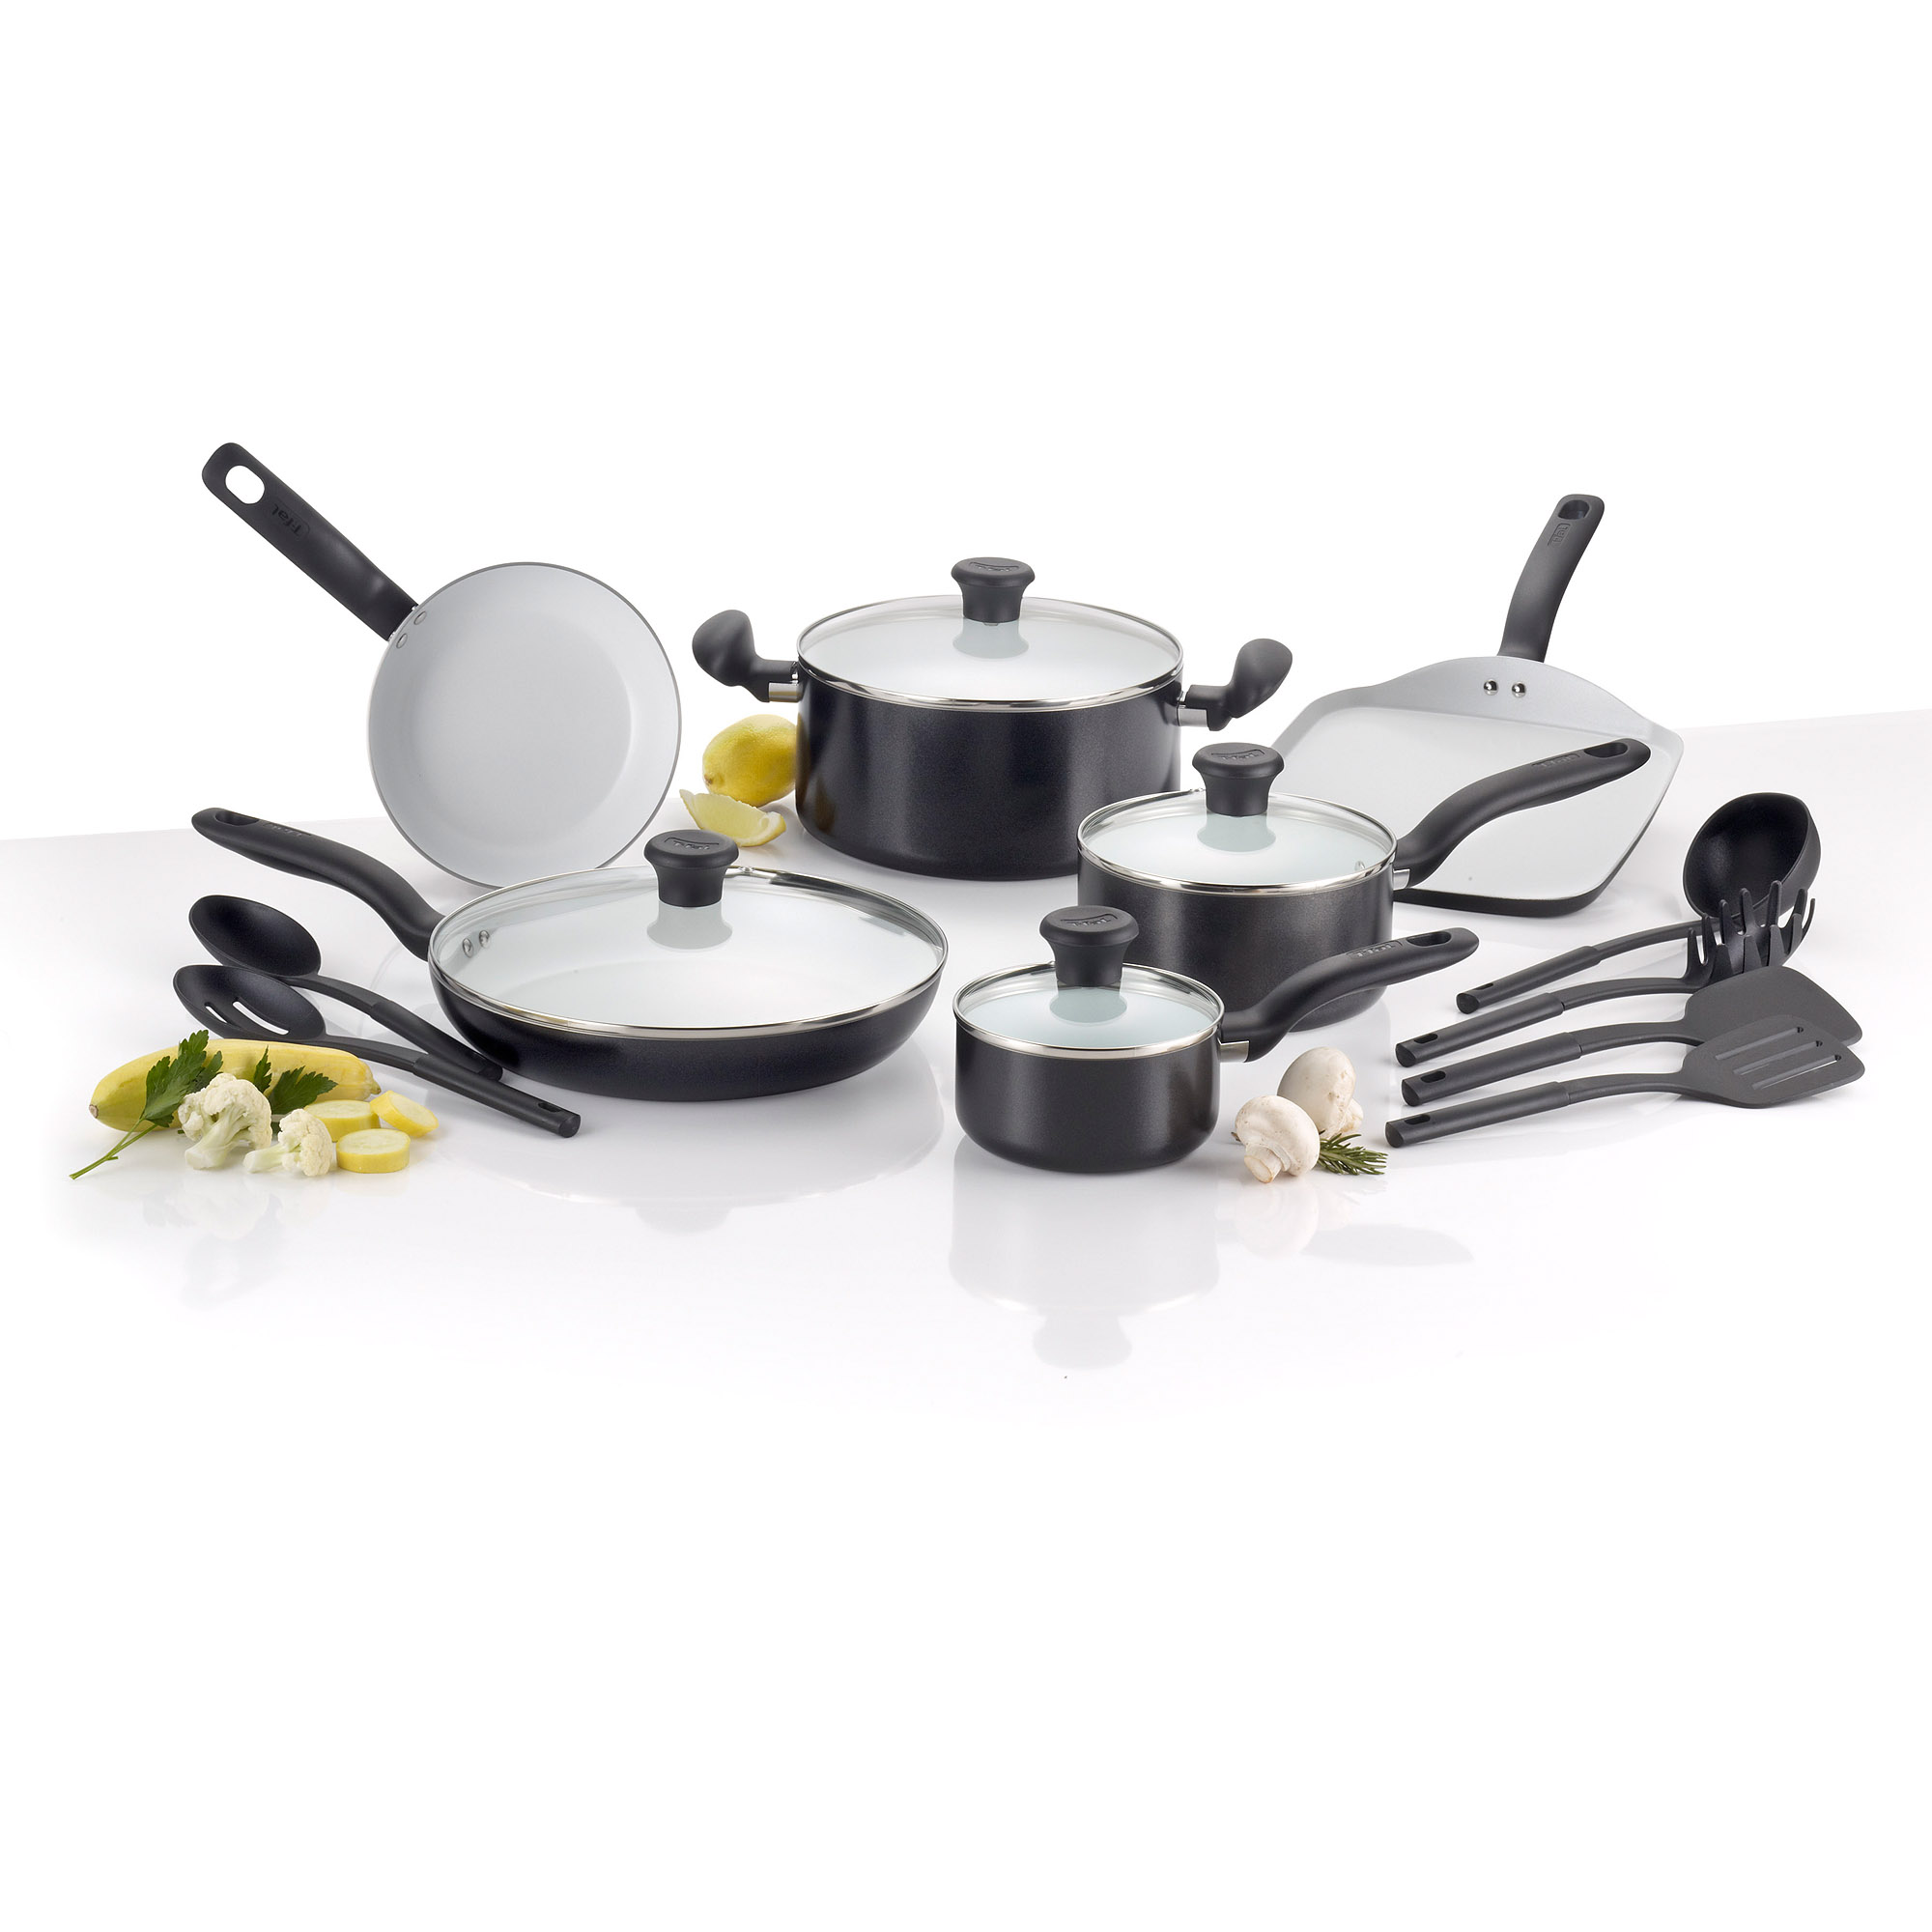 T-Fal Initiatives Ceramic Non-Stick 16-Piece Cookware Set, Black